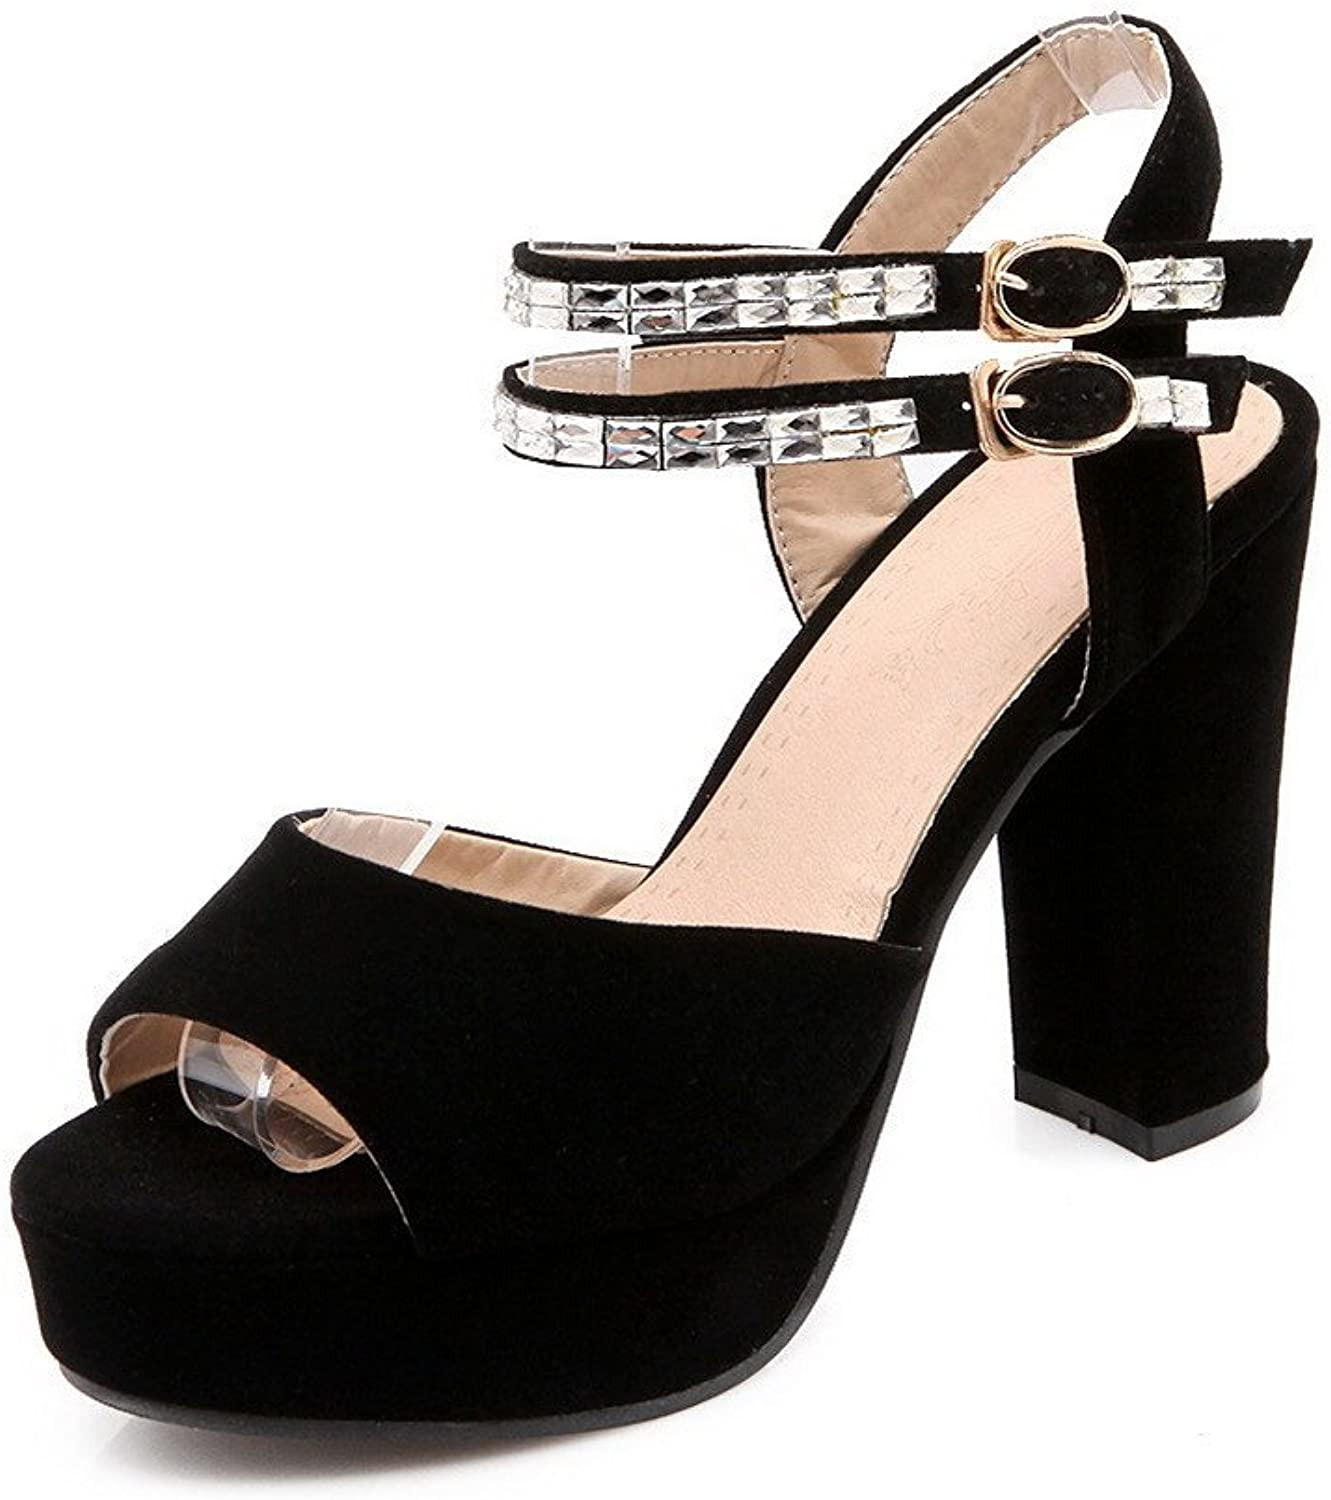 WeiPoot Women's Frosted Open-Toe High-Heels Buckle Solid Sandals